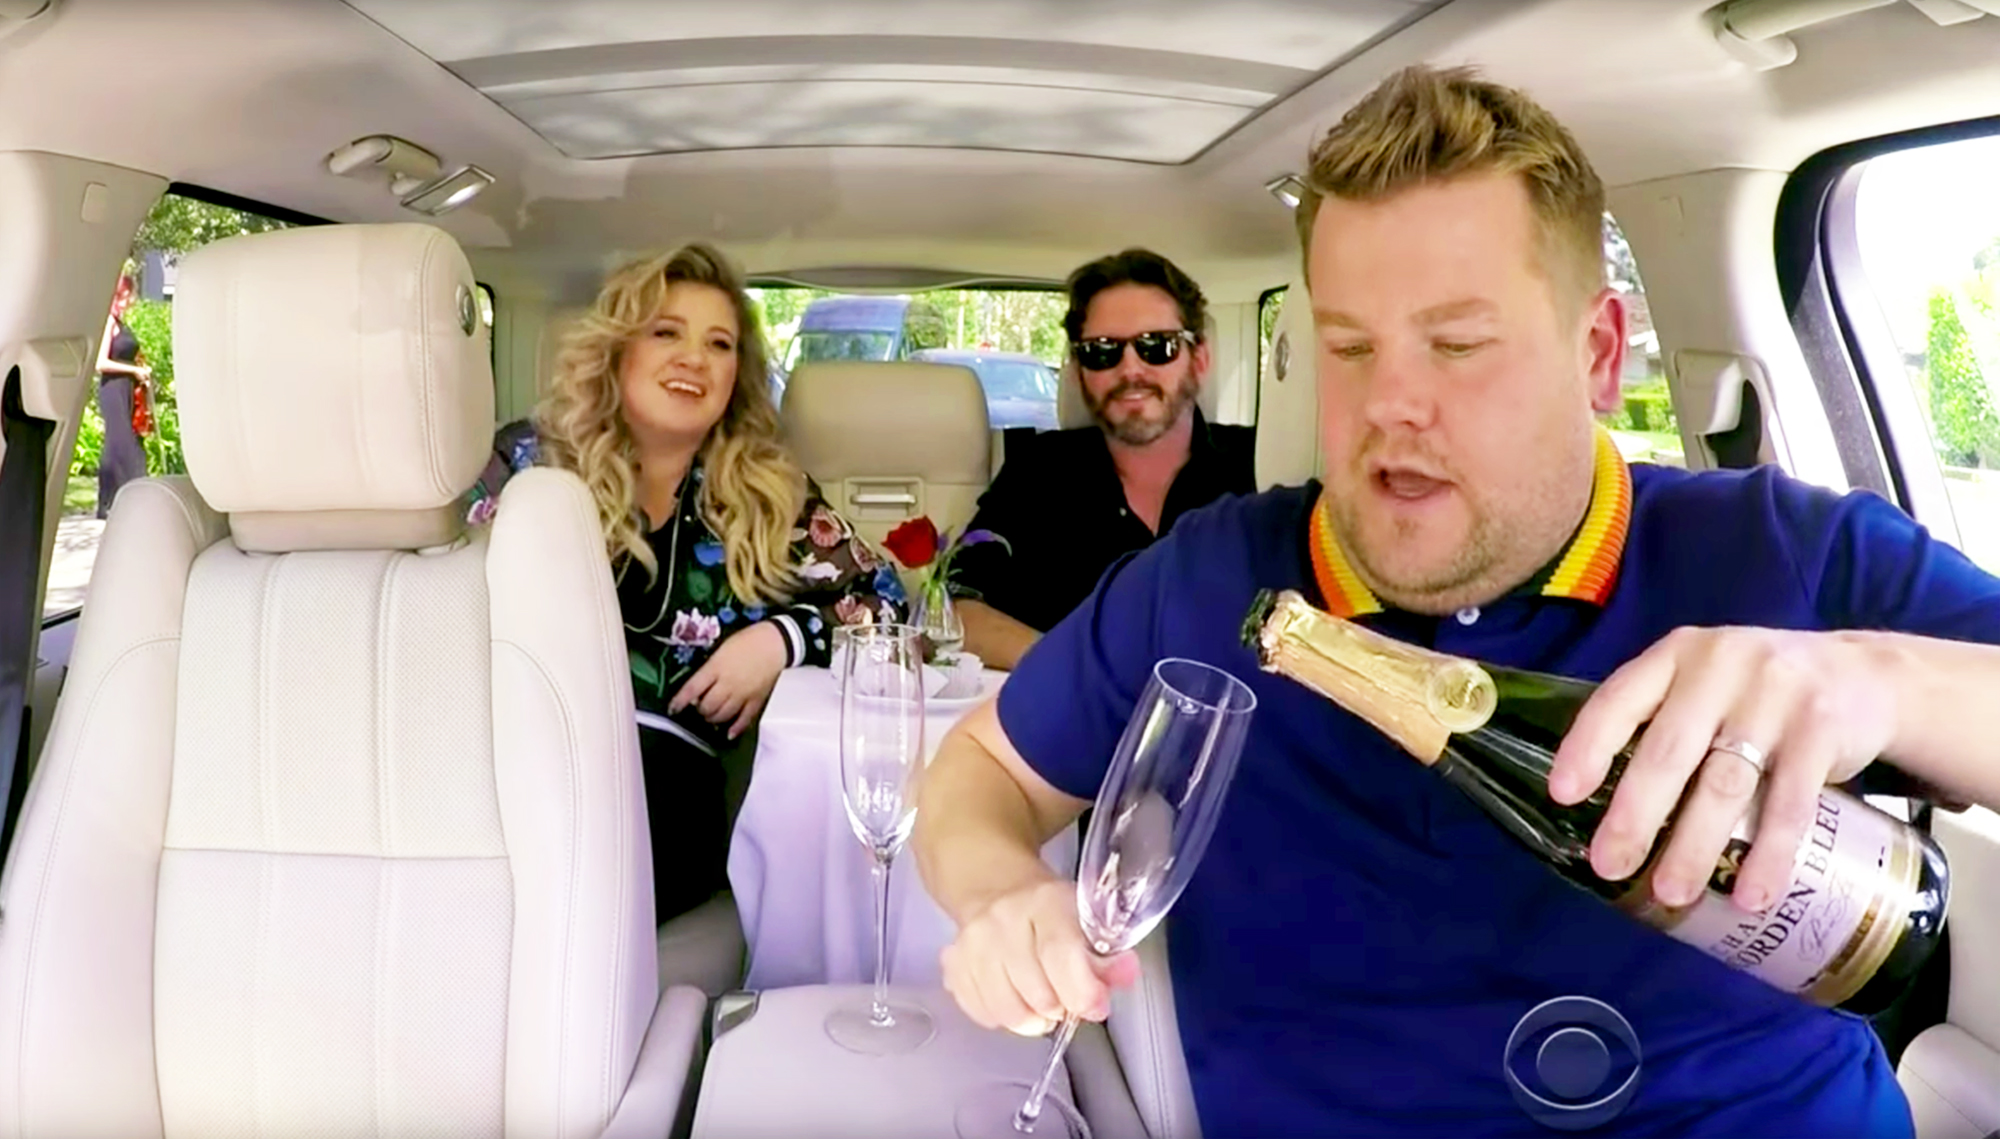 Kelly Clarkson and Brandon Blackstock during Carpool Karaoke with James Corden during 'The Late Late Show with James Corden